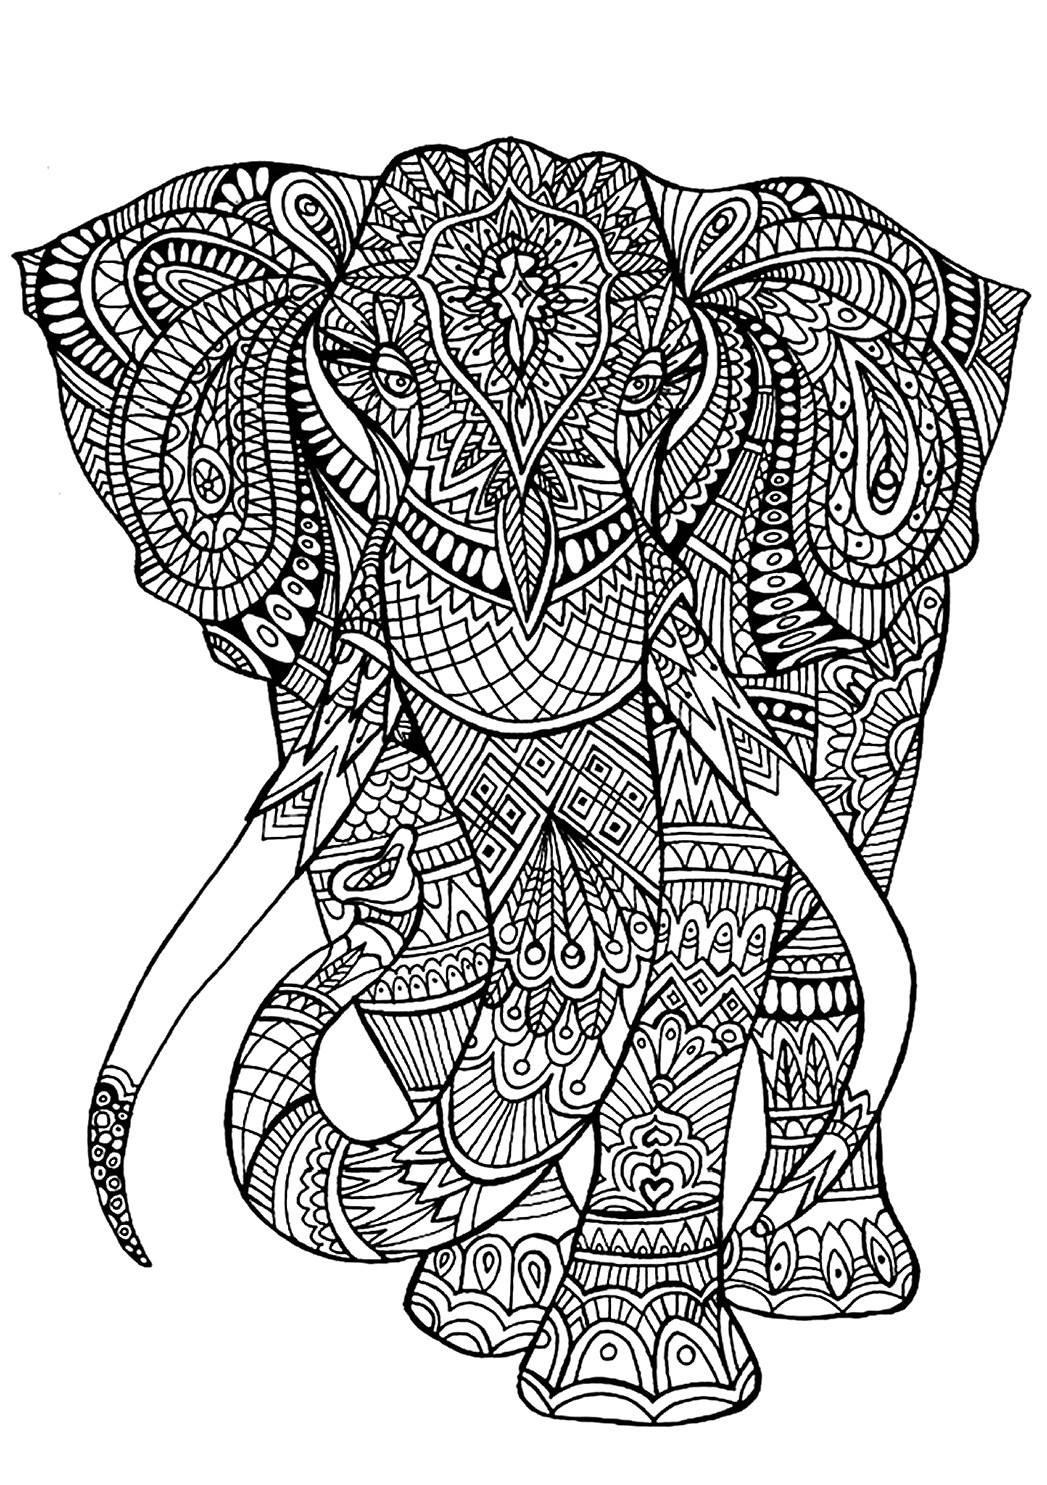 Best ideas about Coloring Book Pages Of Elephants . Save or Pin Color My World Now.